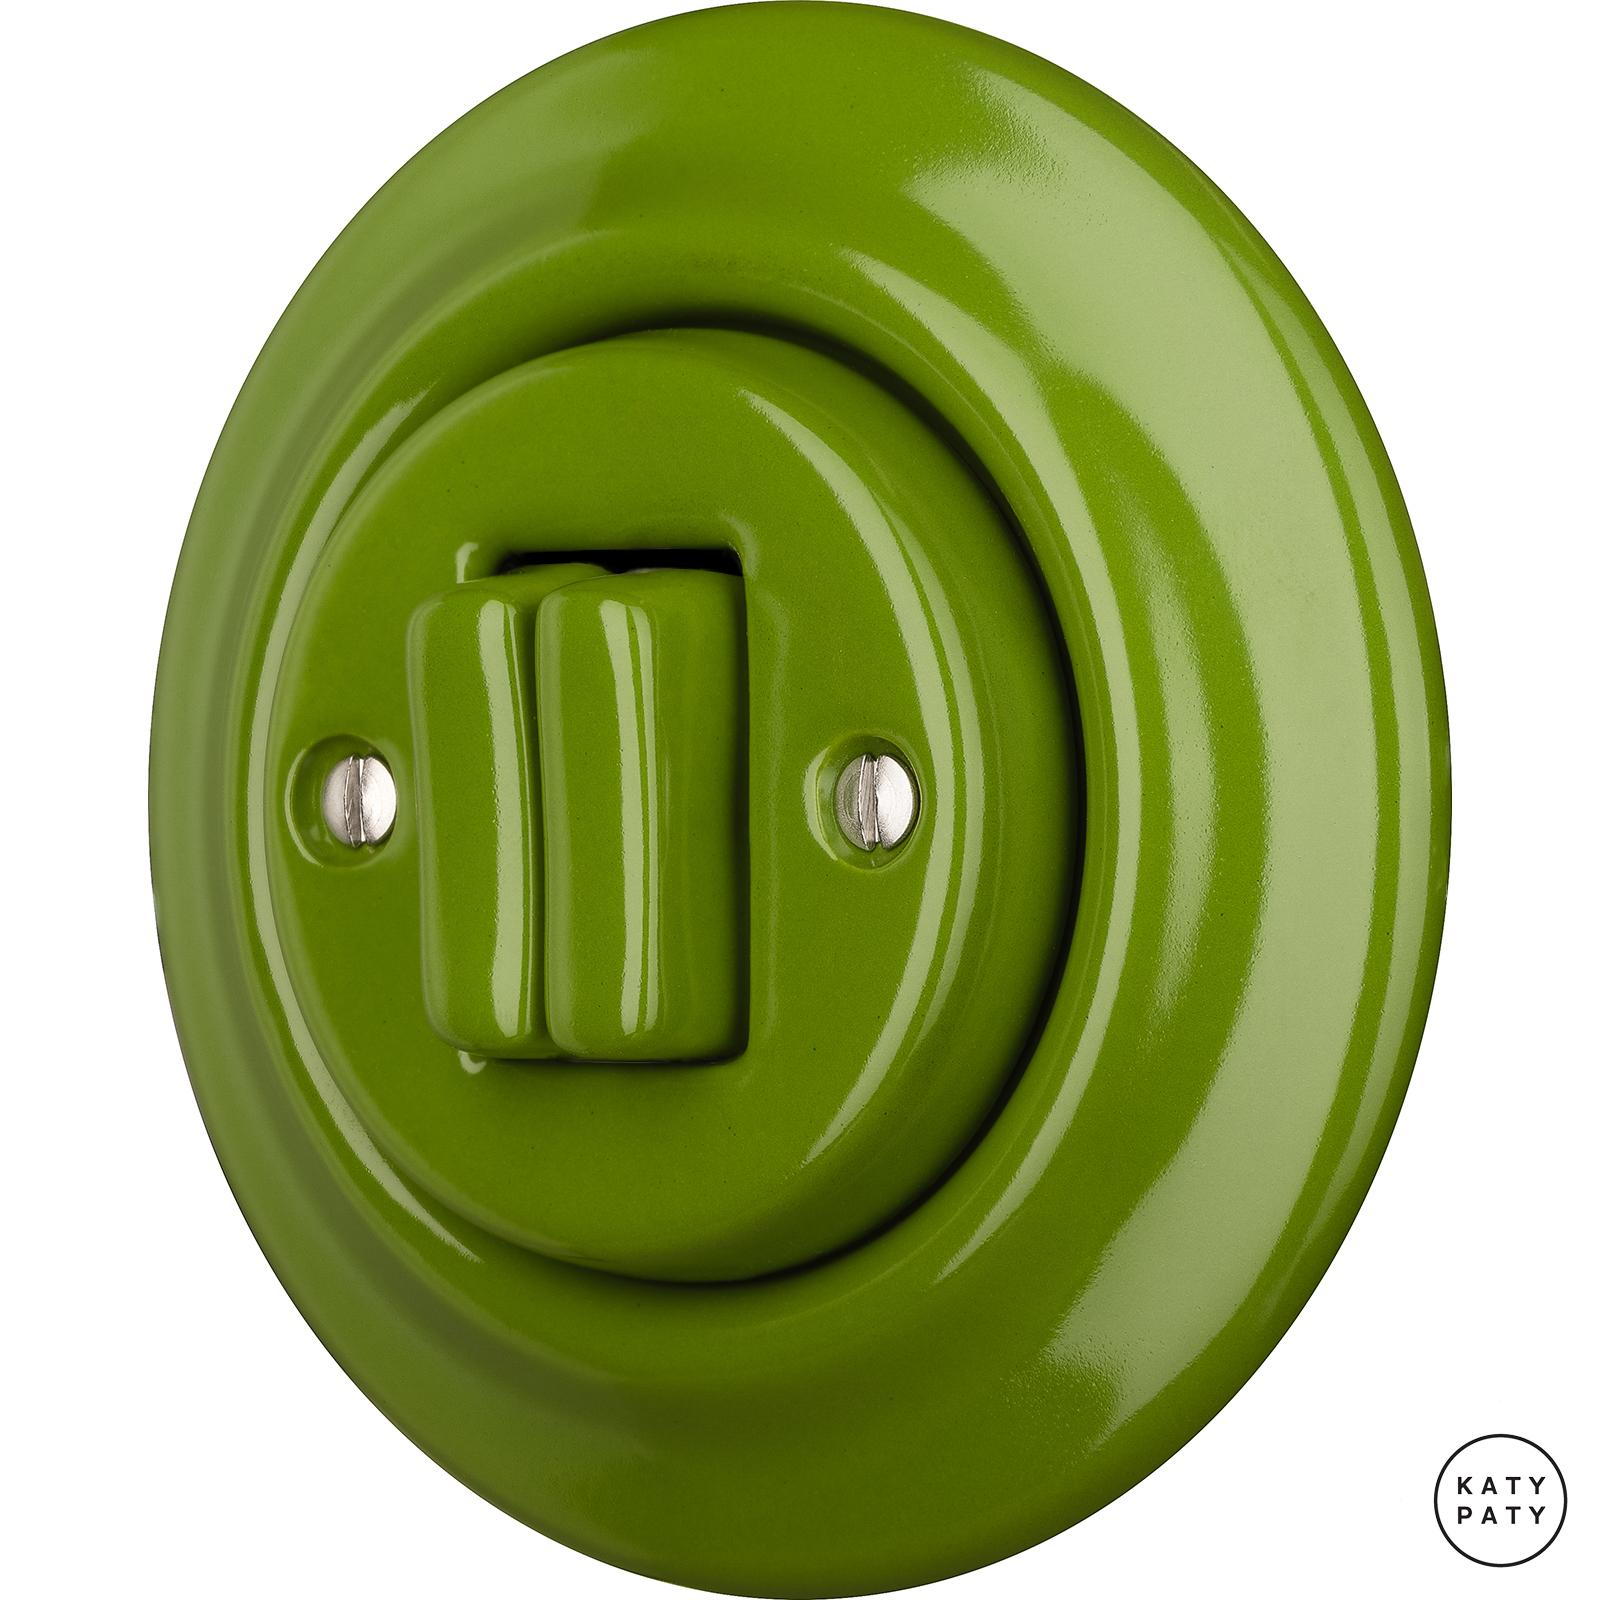 Porcelain switches - 2 gang ()  - NITOR CHLORA | Katy Paty